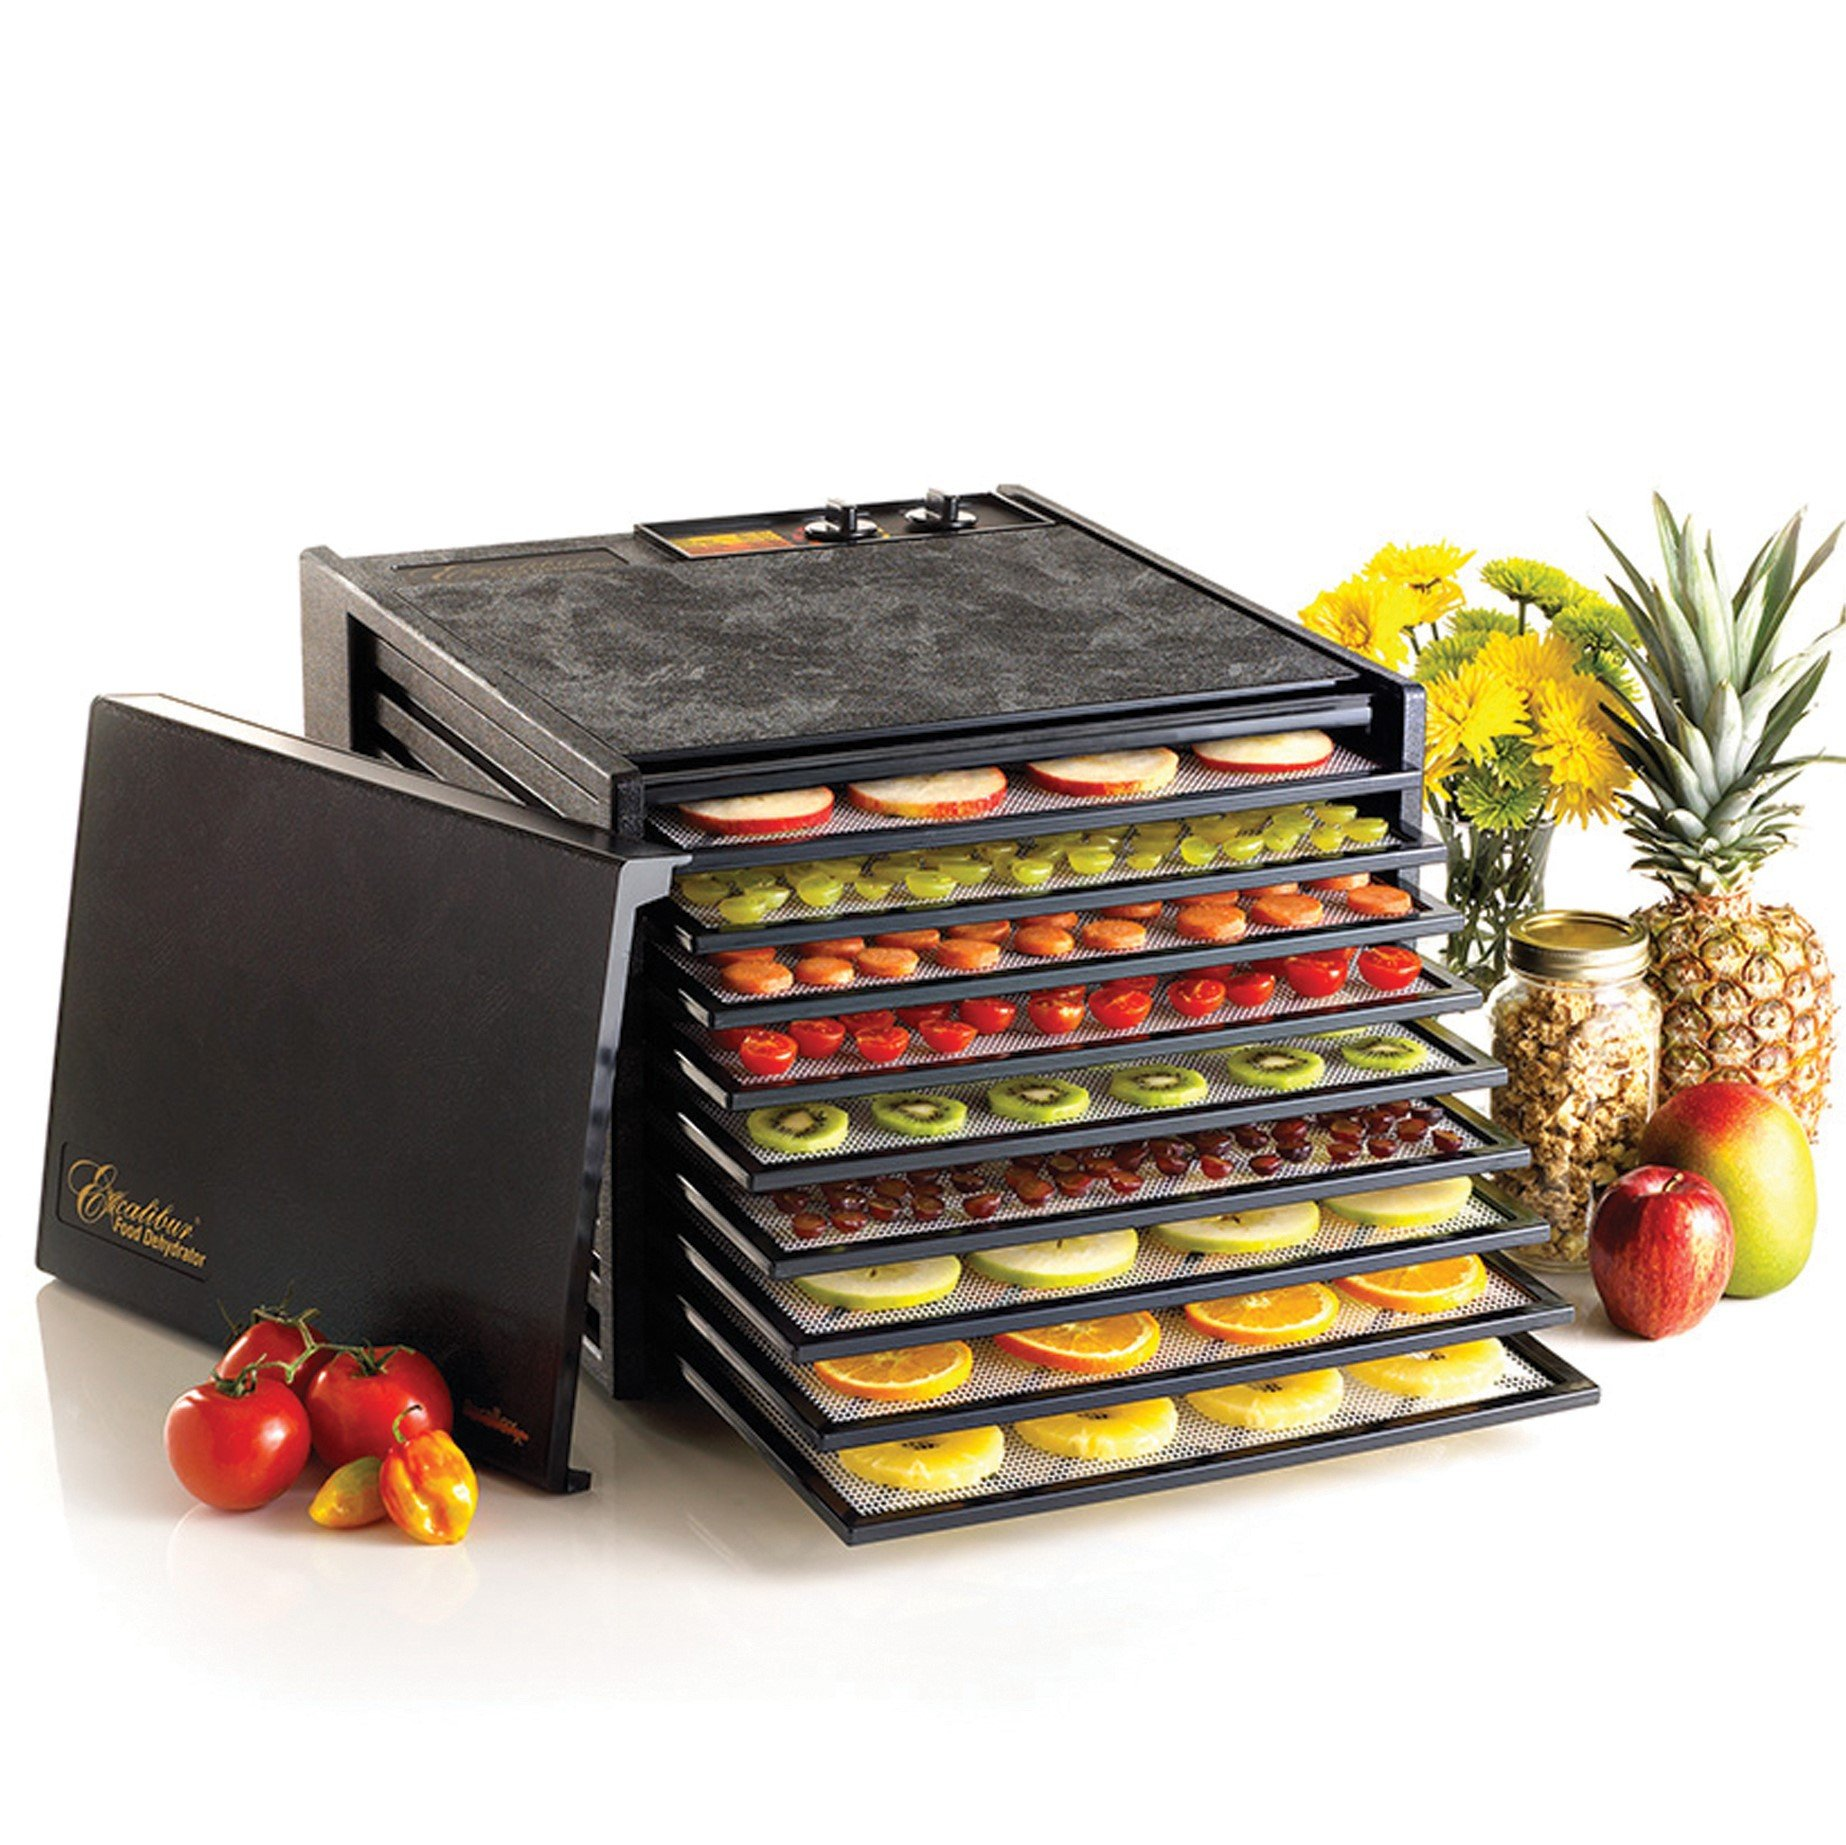 Excalibur 3926TB Food Dehydrator with 26hr Timer, Solid Door, Black